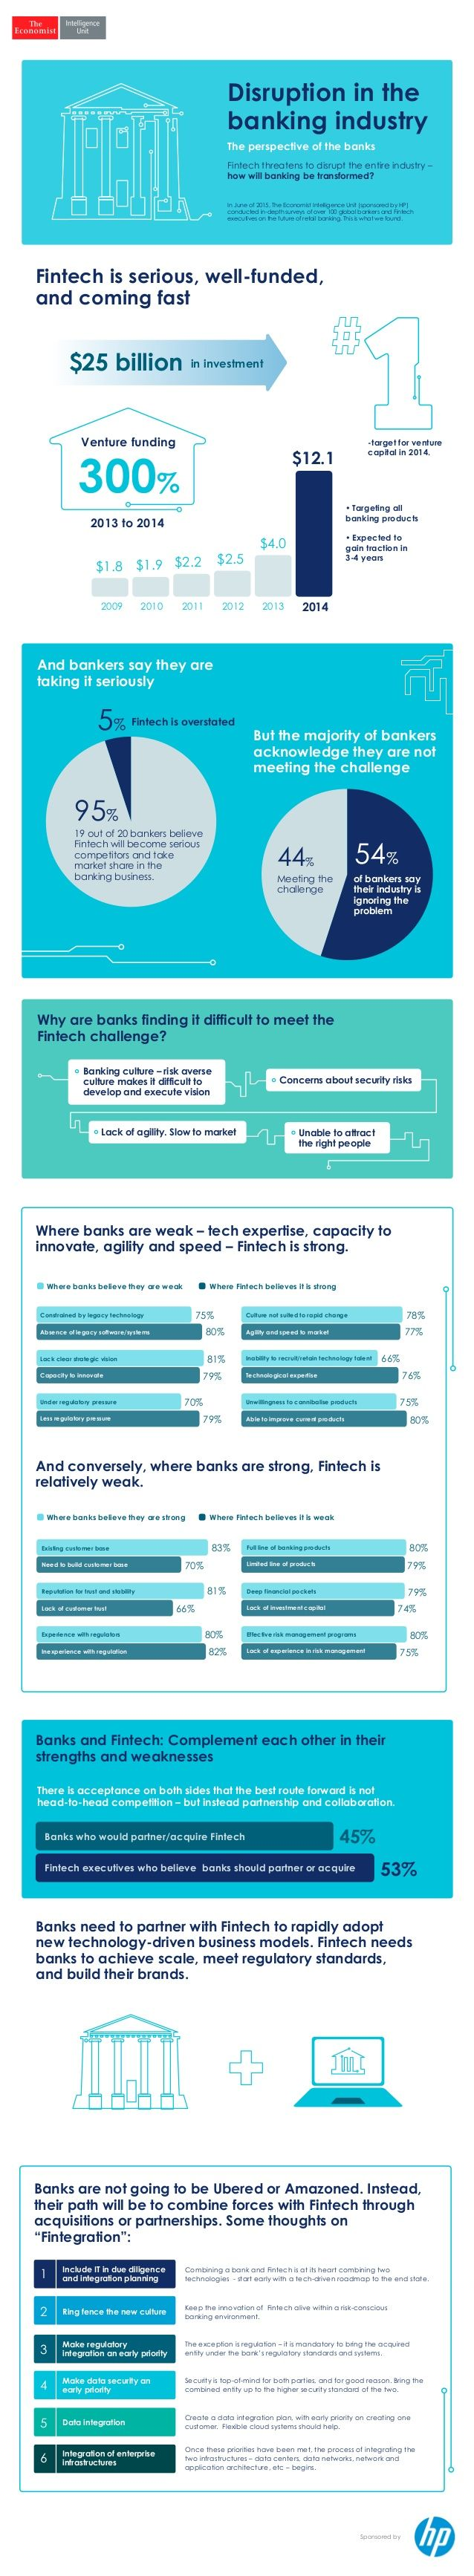 Disruption in the banking industry